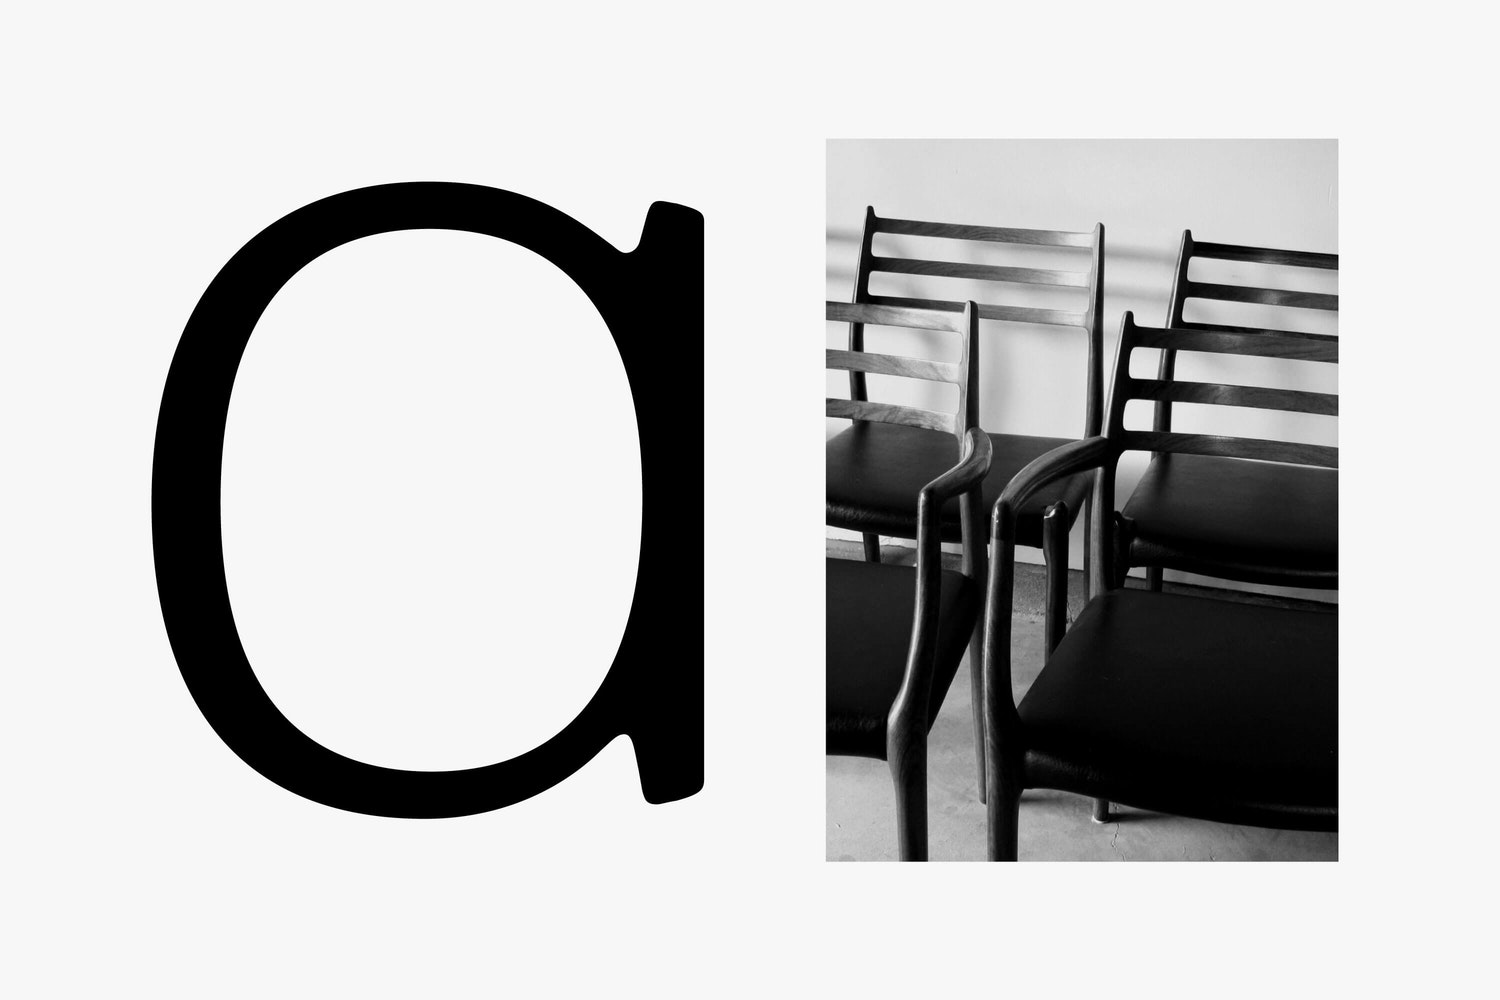 bespoke letter 'a' in black writing and black and white image of chairs